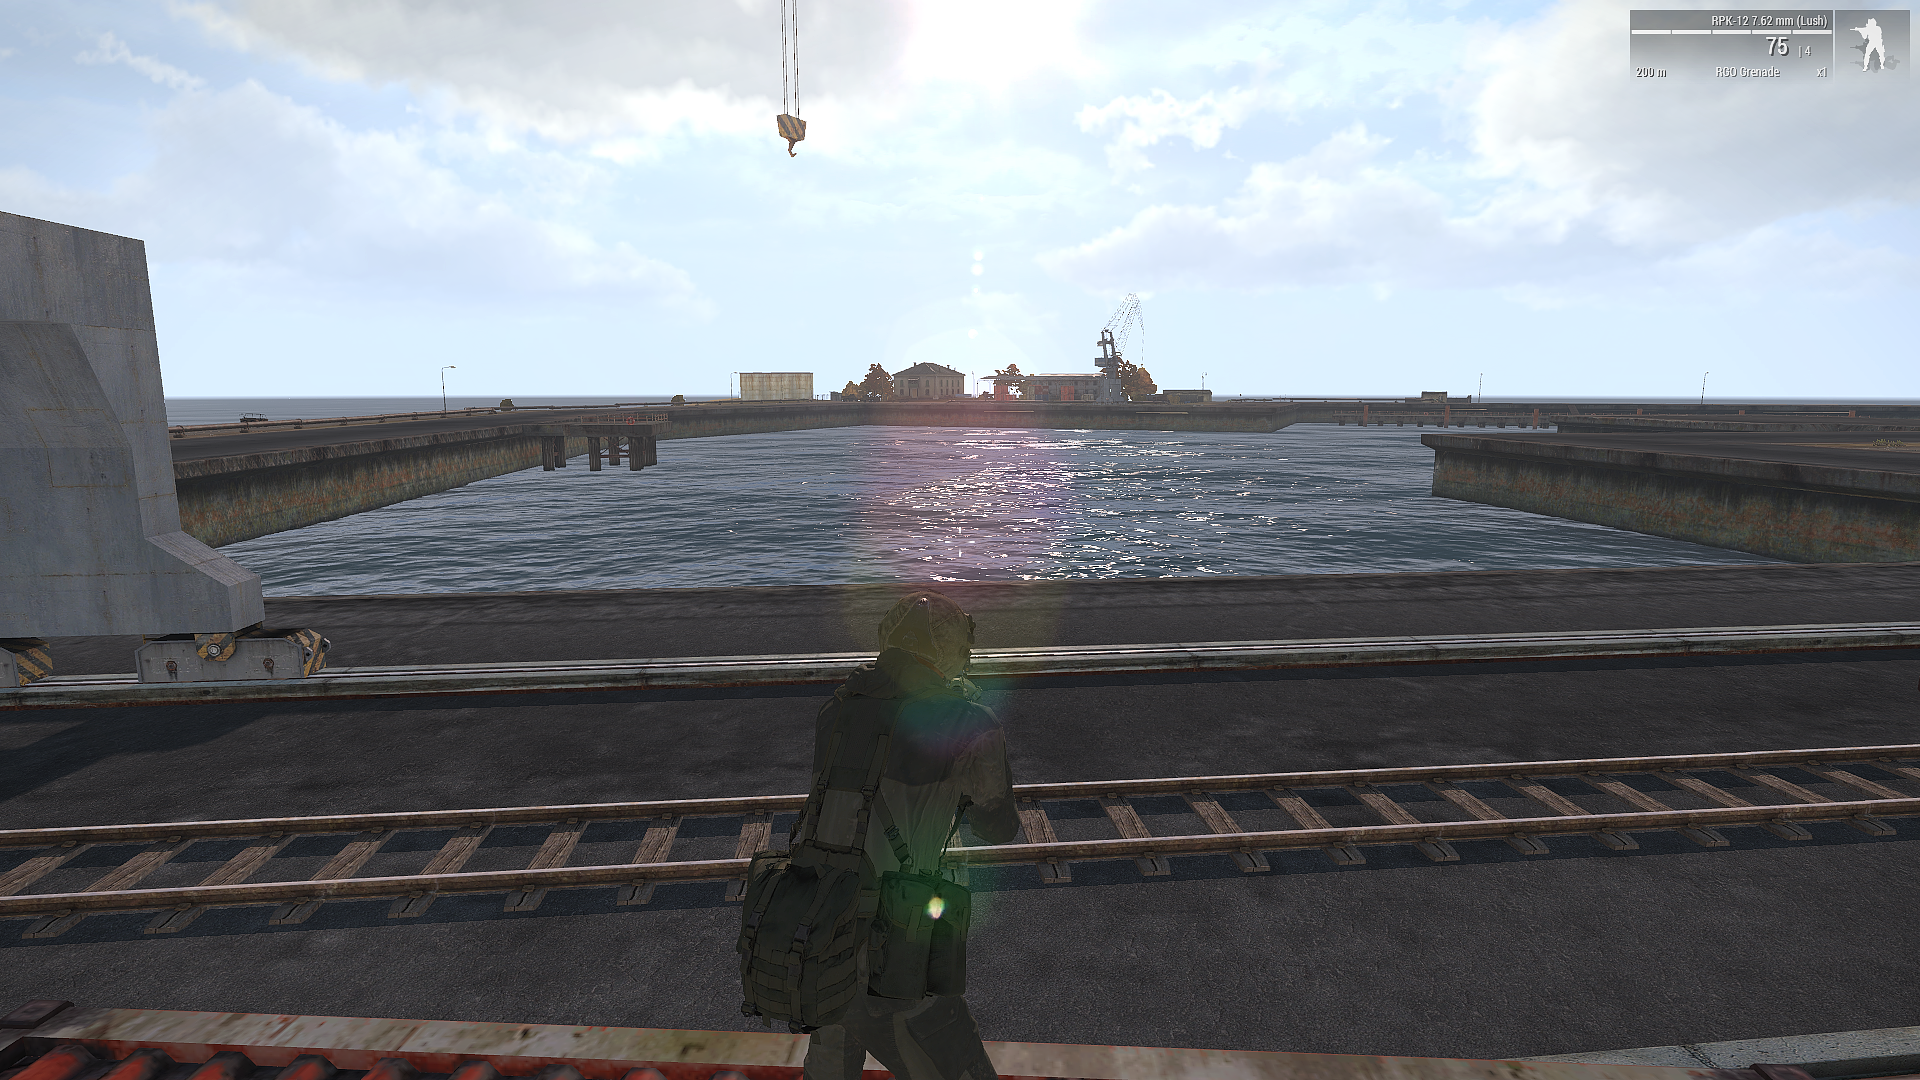 Arma3-x64-2020-01-28-15-54-48.png